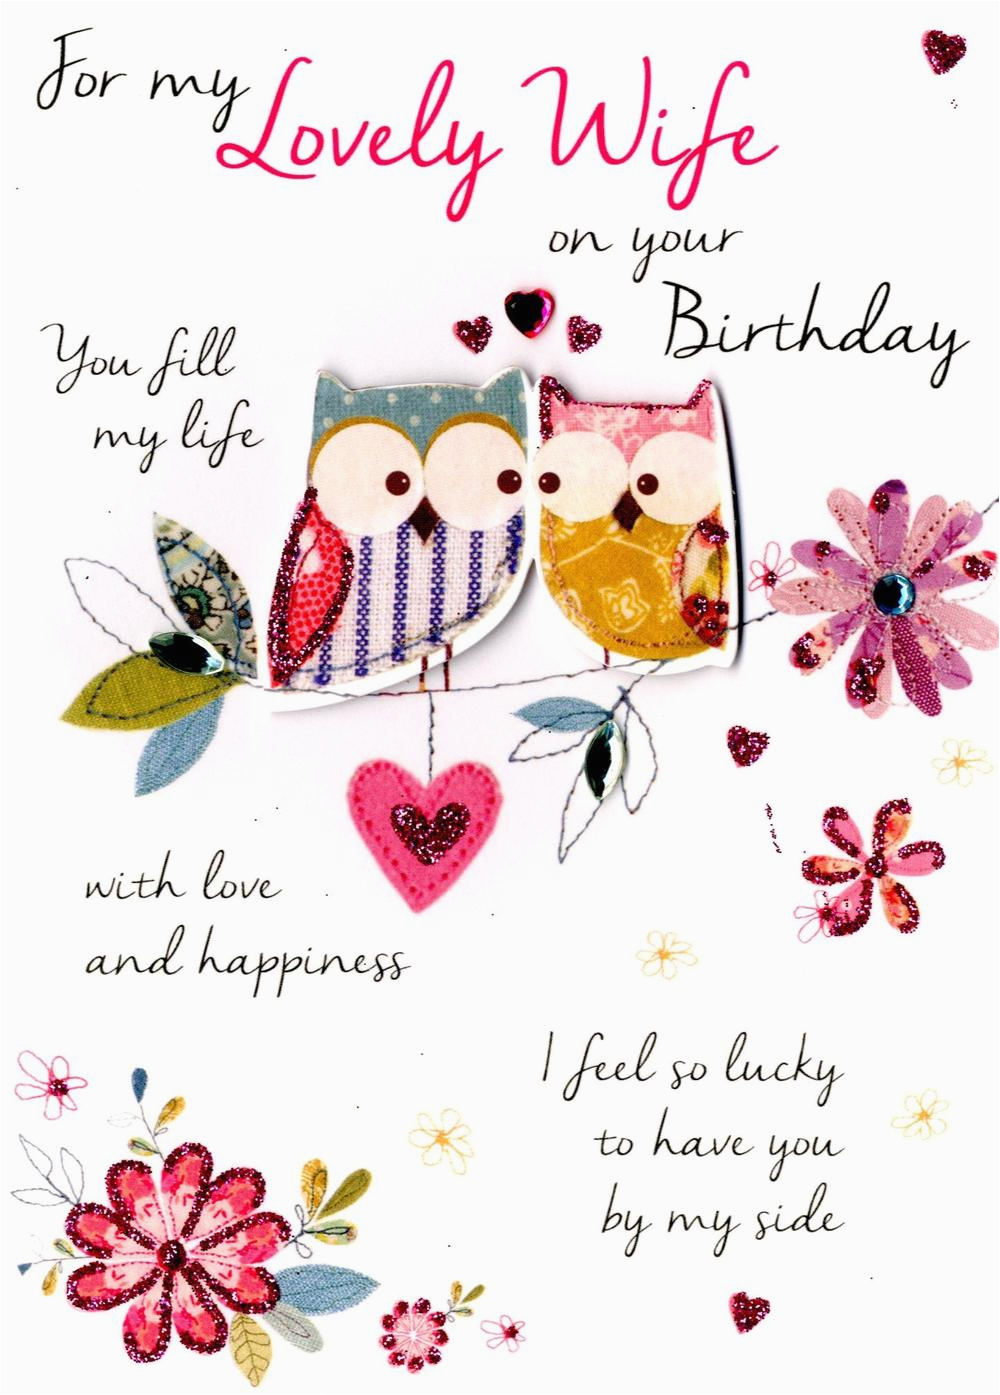 lovely wife birthday greeting card cards love kates